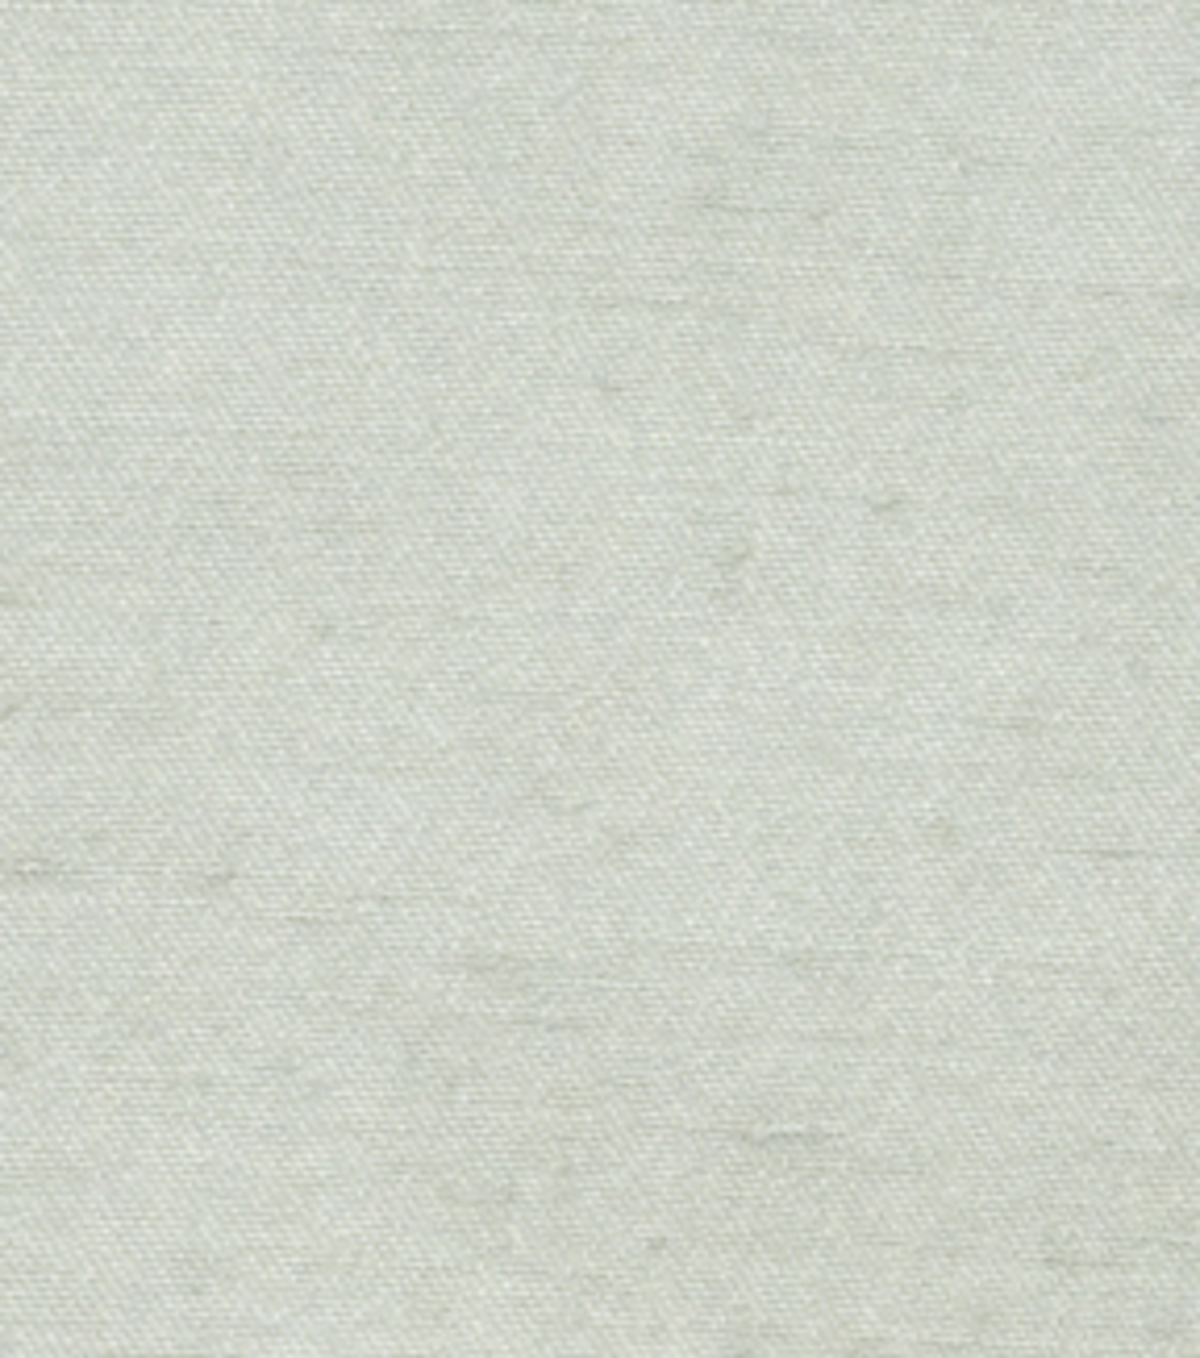 Home Decor 8\u0022x8\u0022 Fabric Swatch-Signature Series Antique Satin Opal